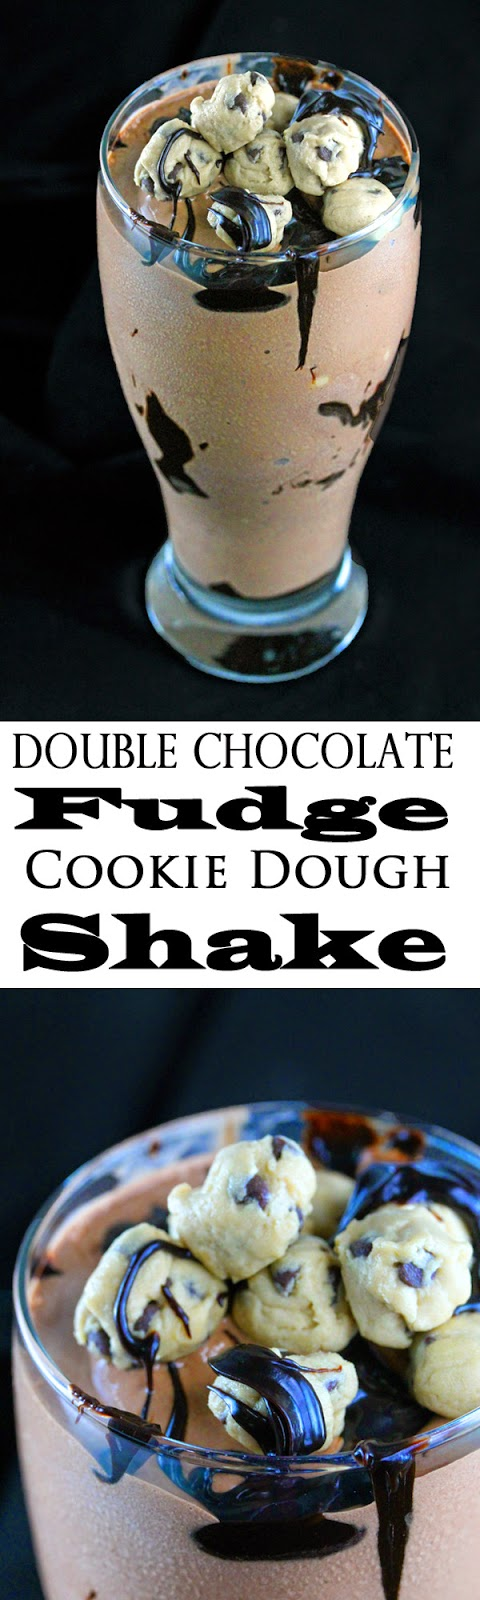 Double Chocolate Fudge Cookie Dough Shake